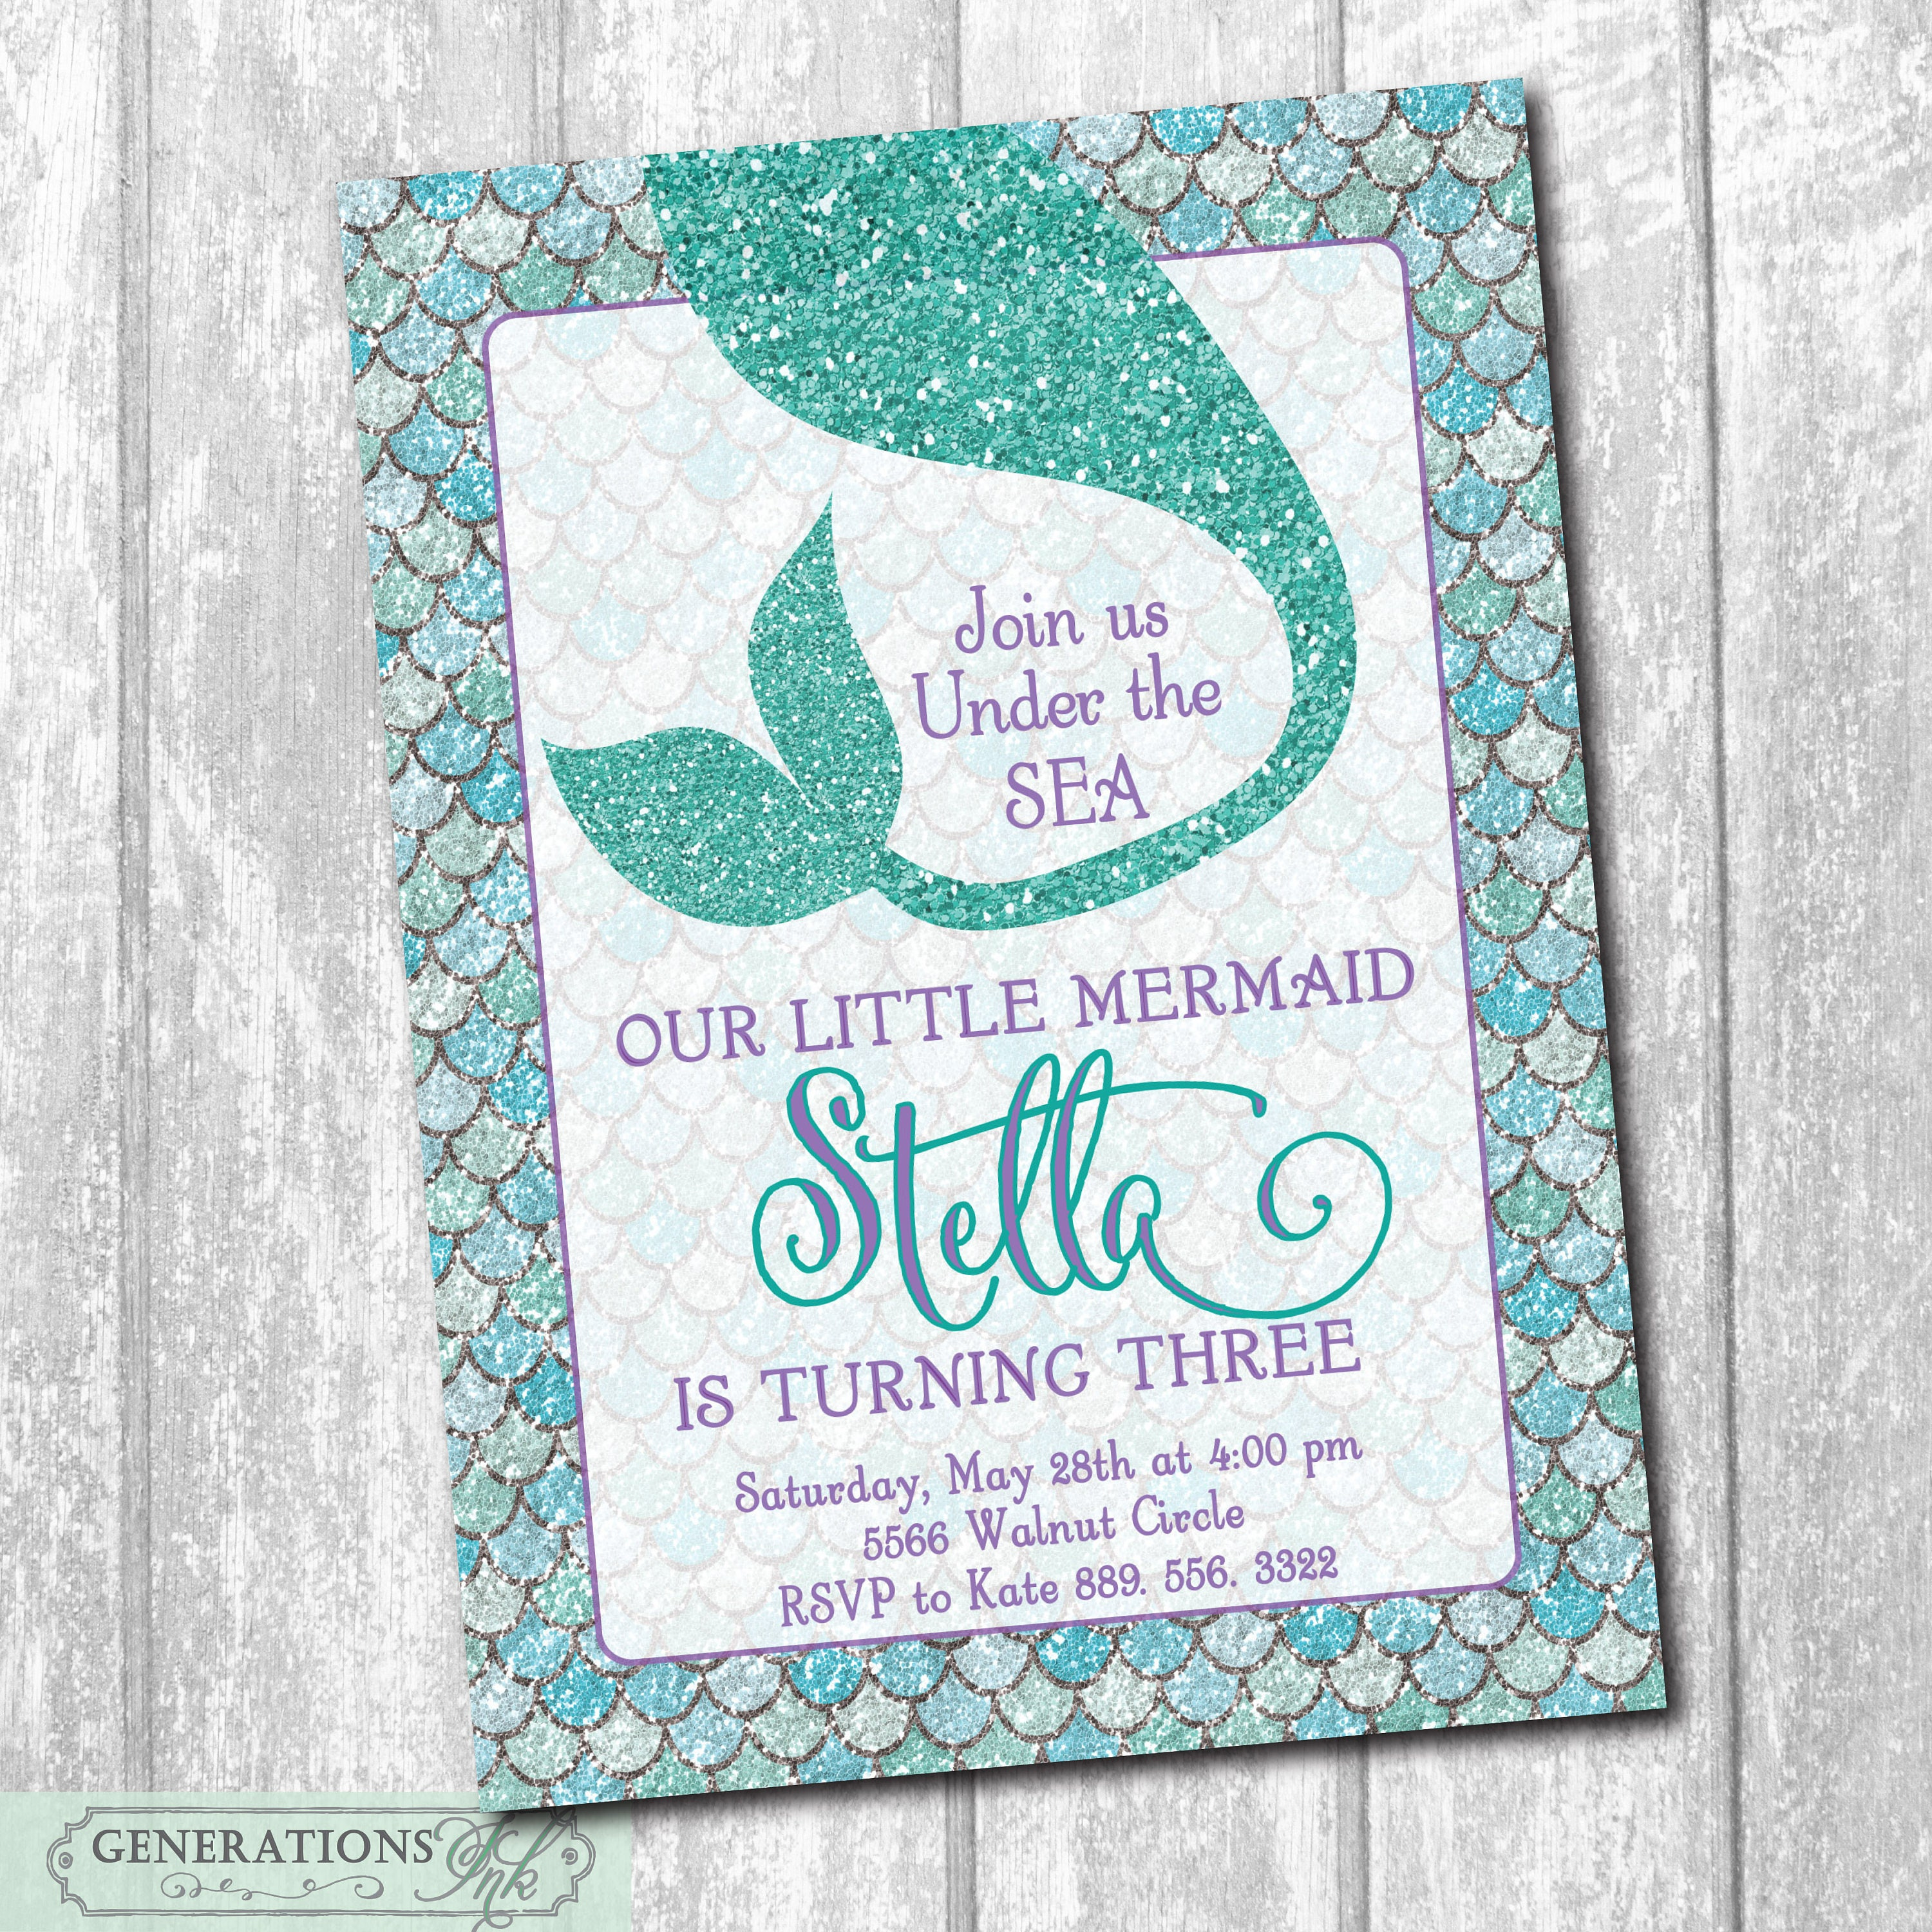 Mermaid Birthday Party Invitation...Under the Sea../DIGITAL FILE ...